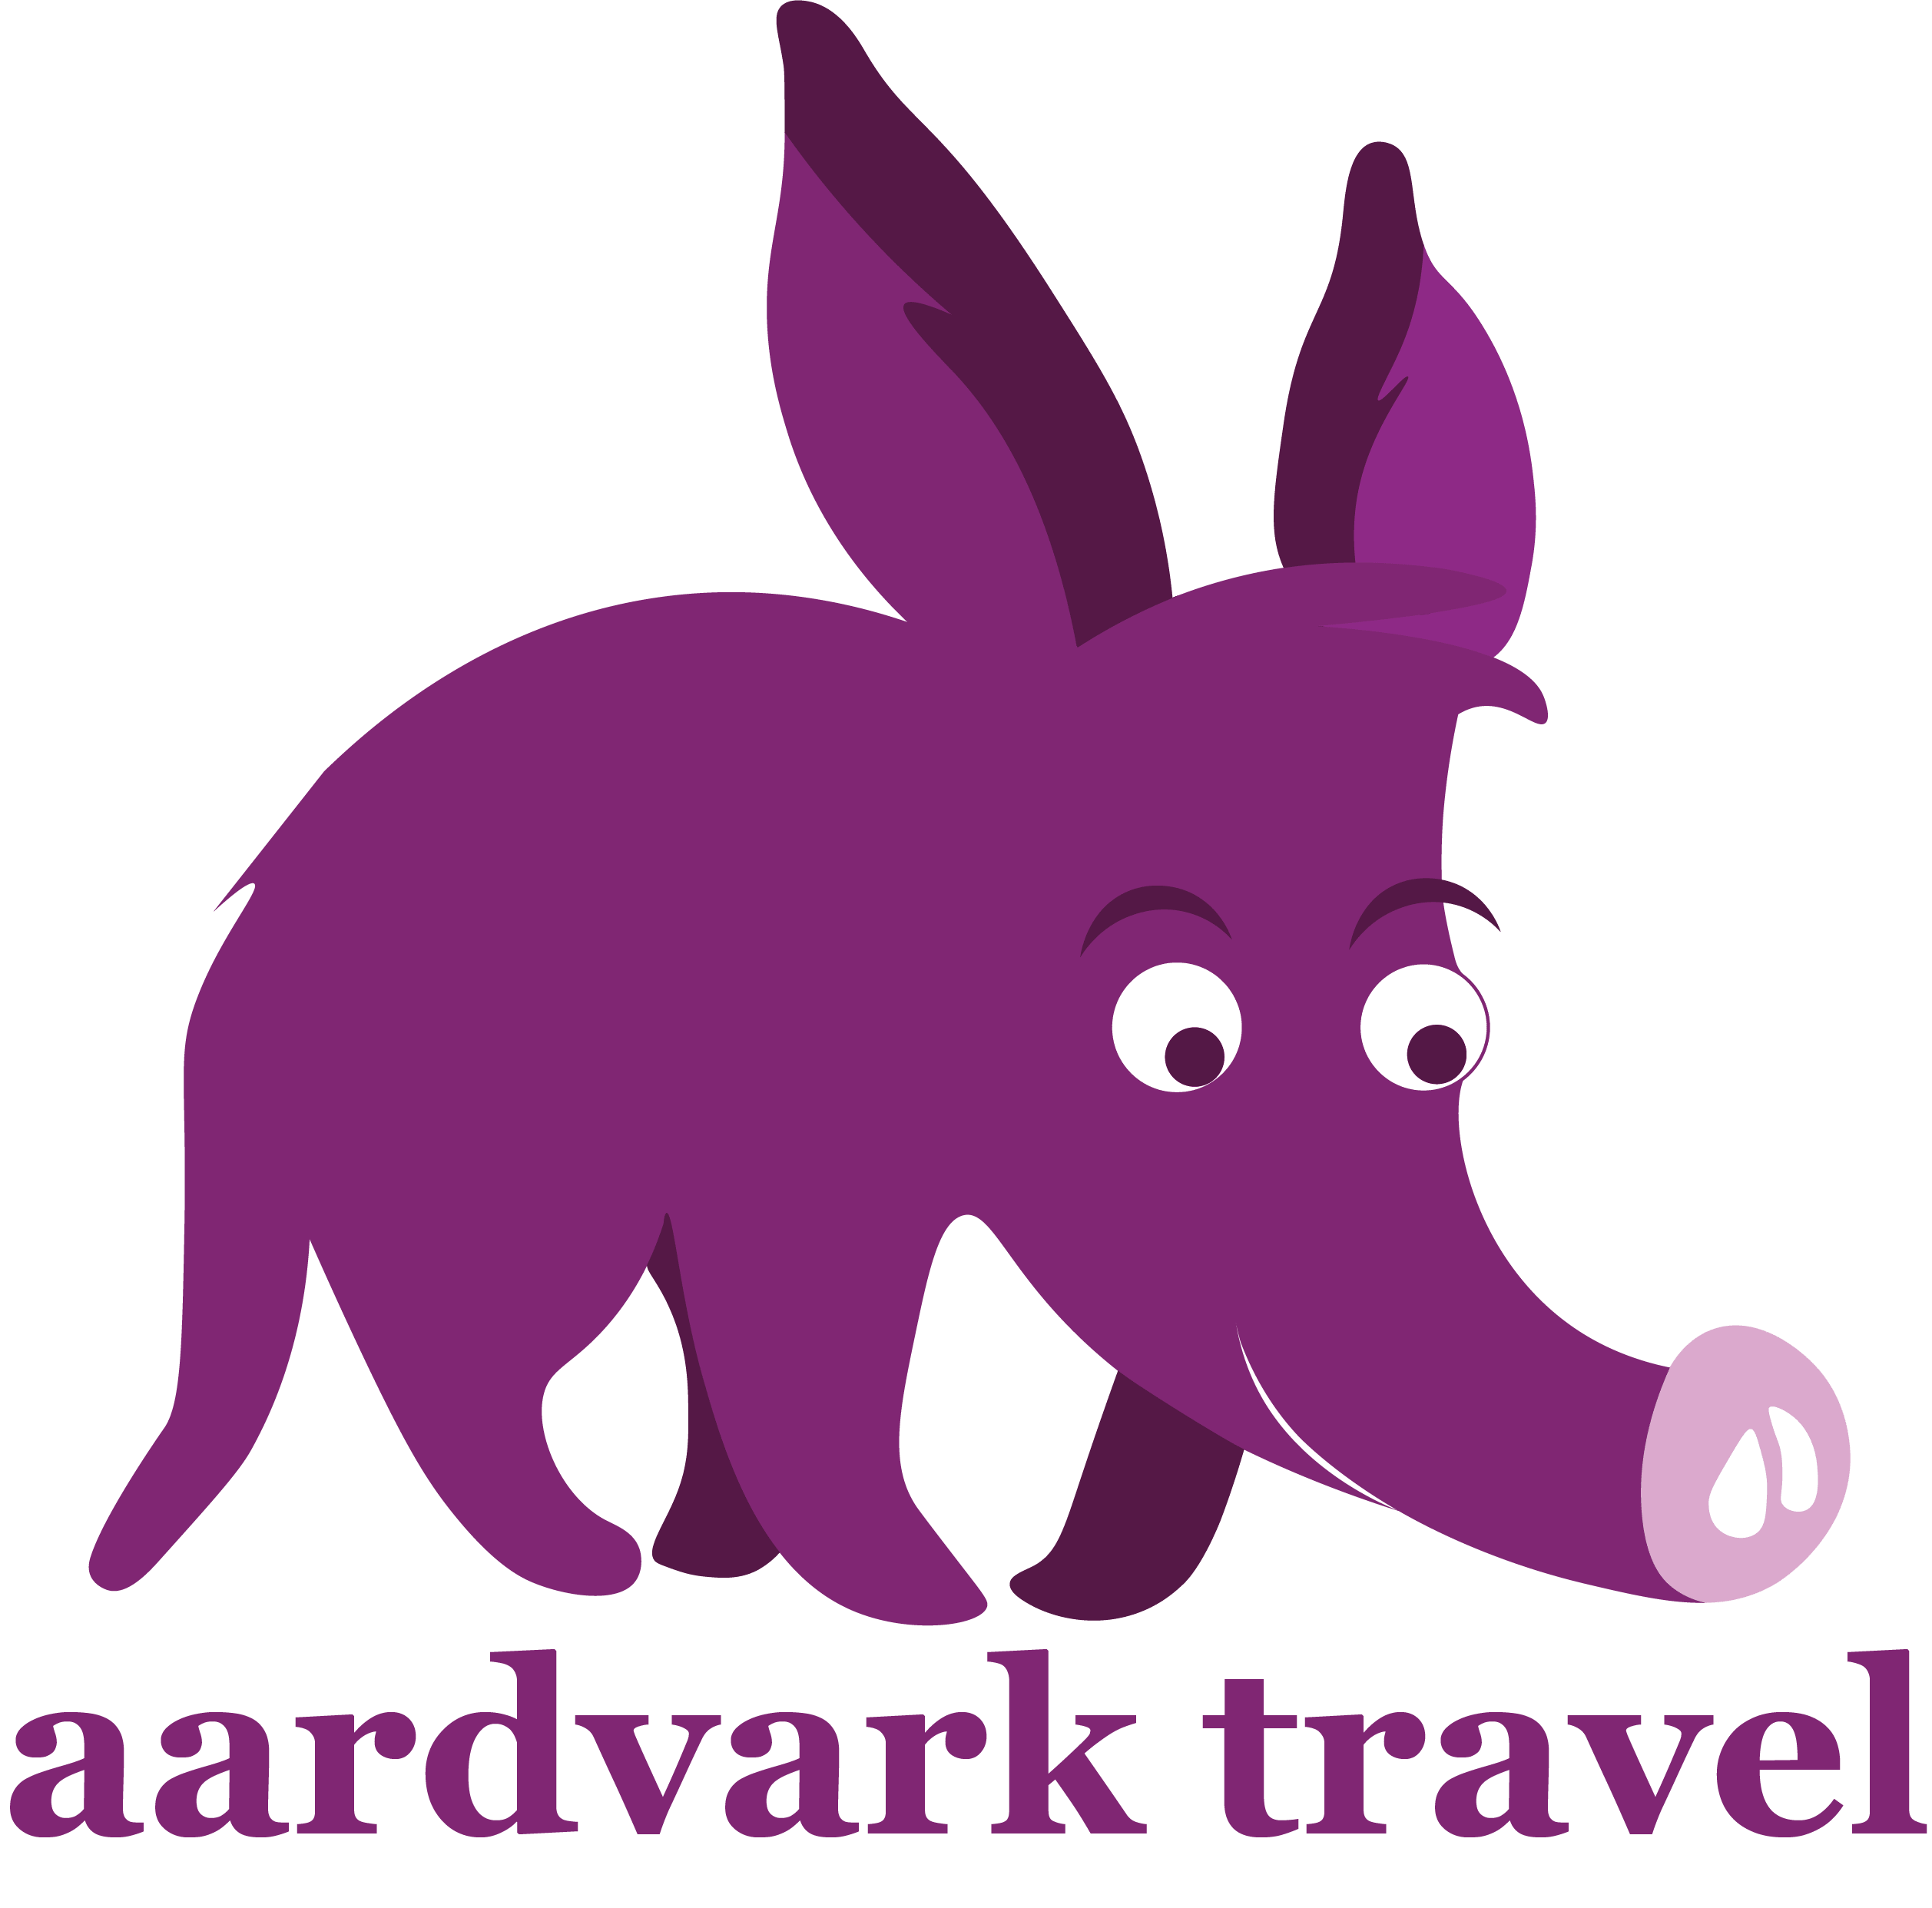 Airport Taxi | Aardvark Travel Logo